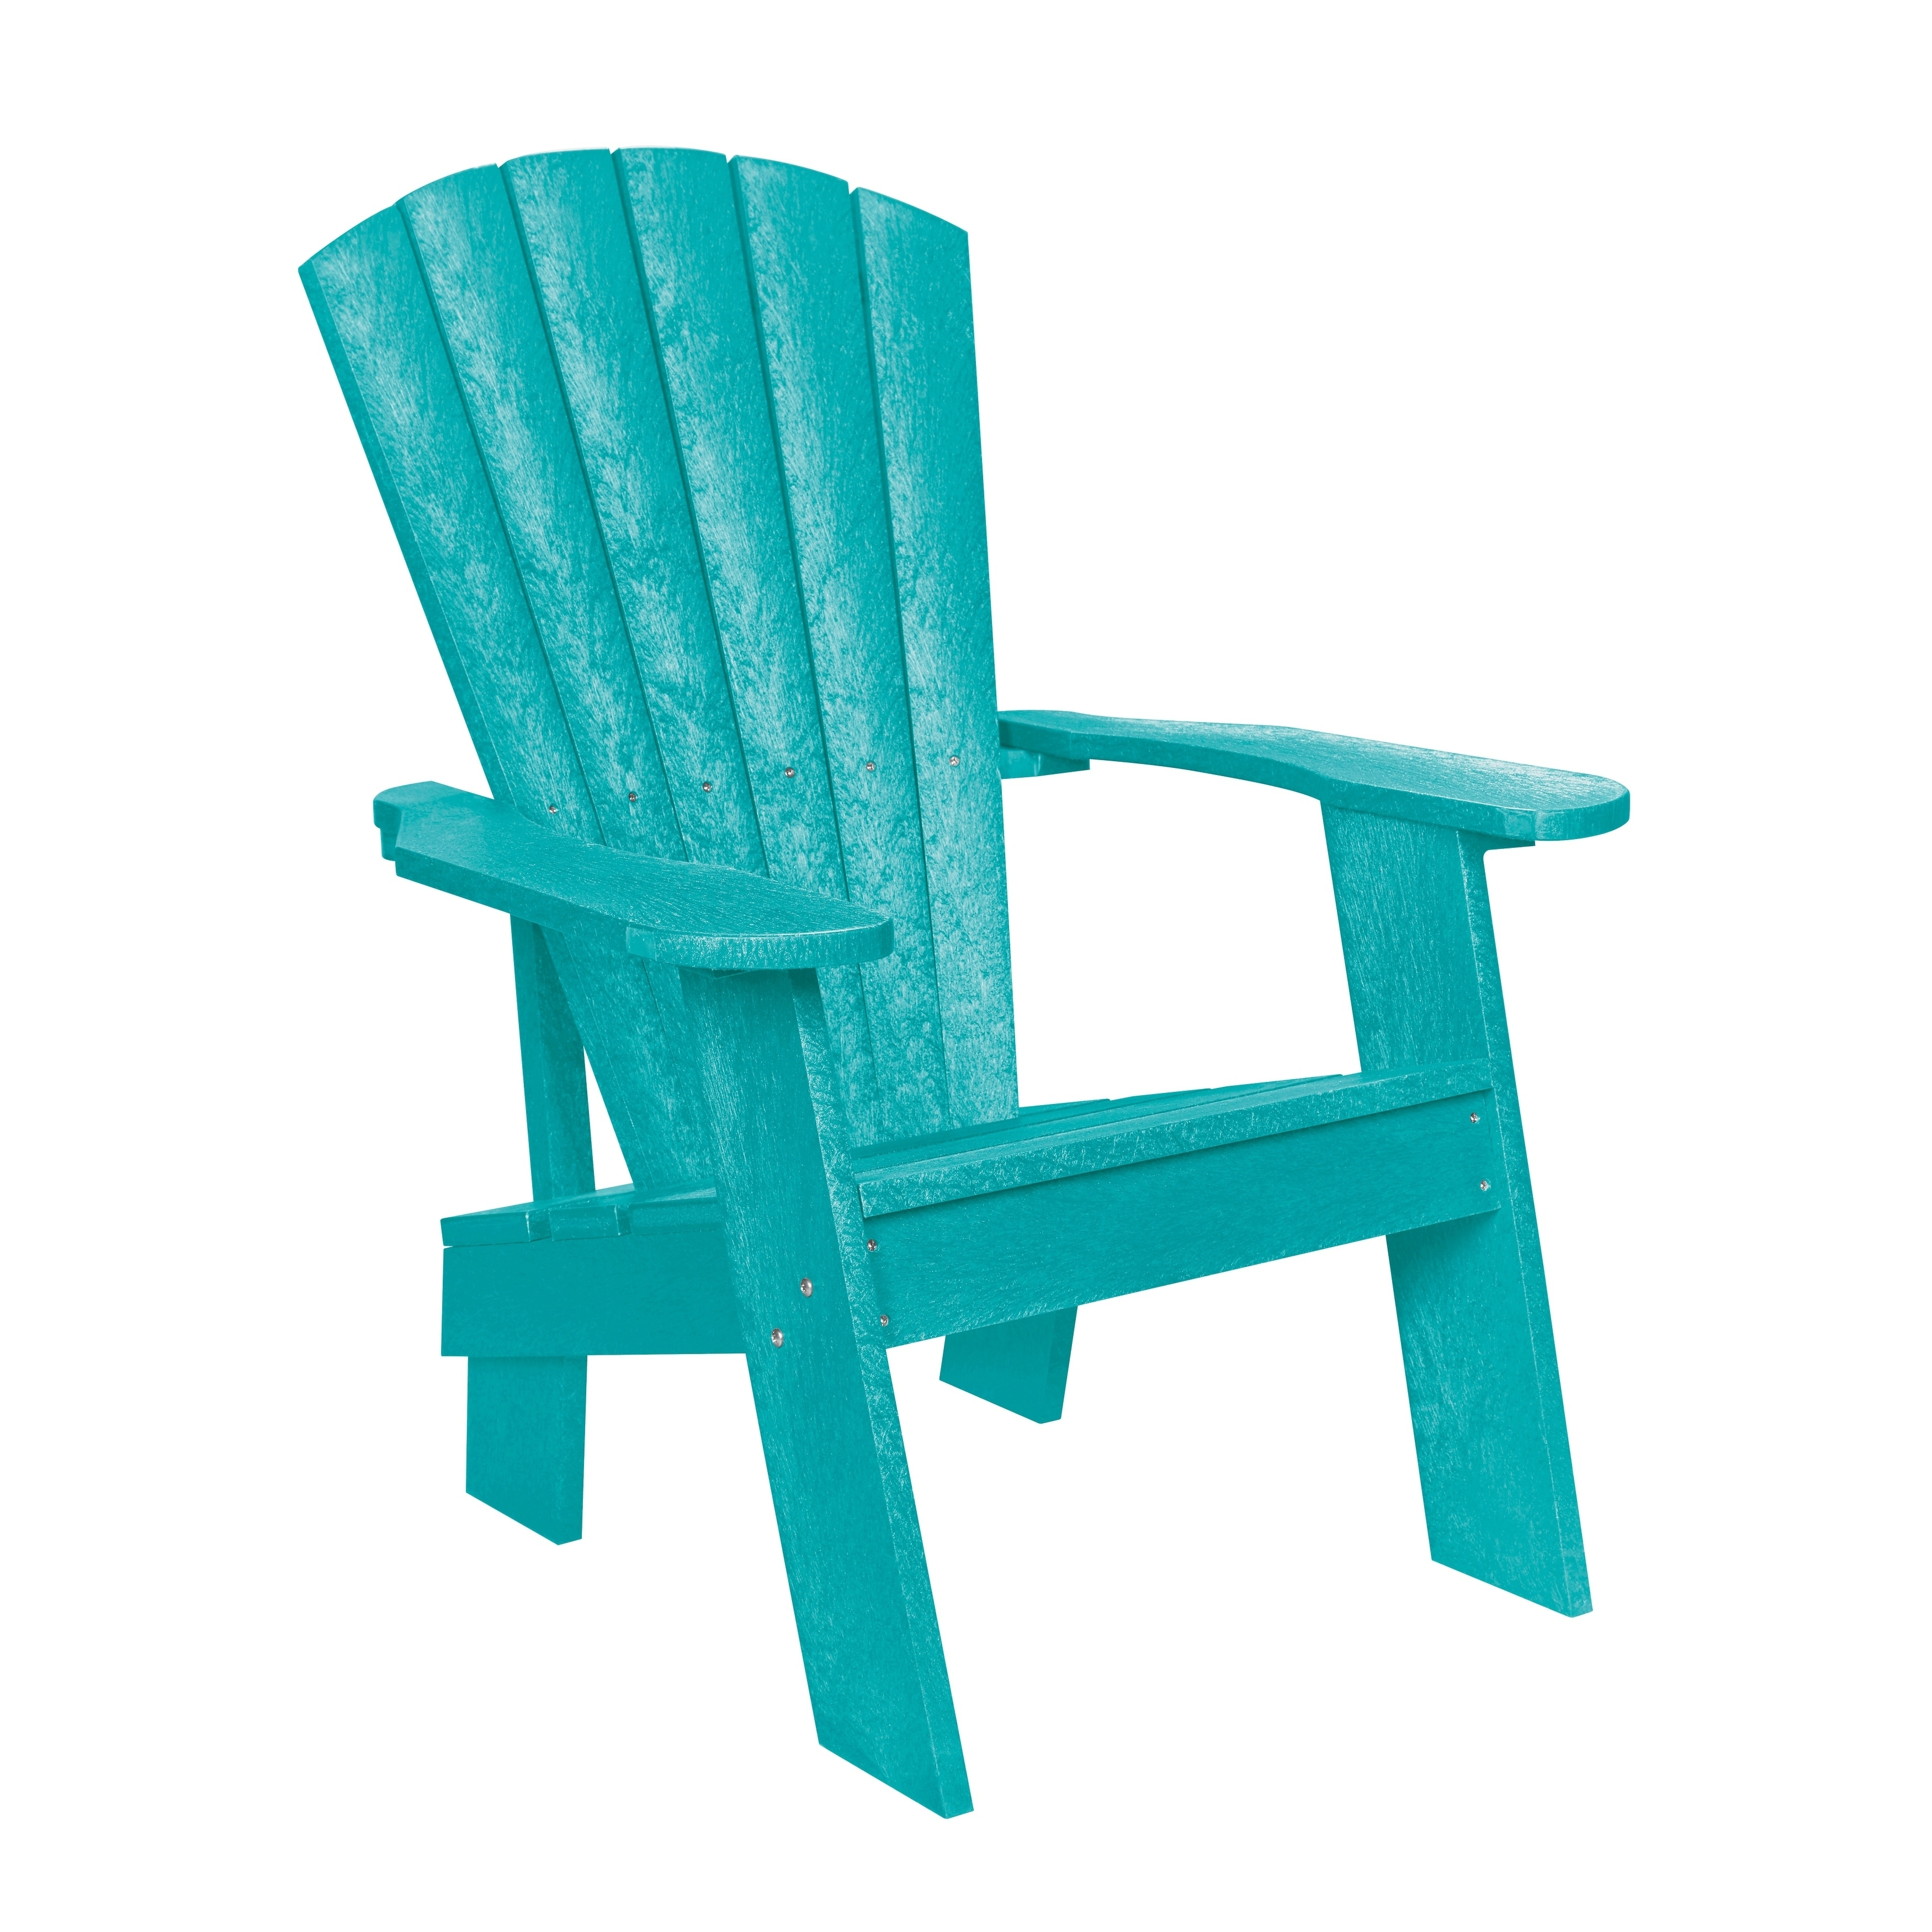 childrens adirondack chair plastic sky blue covers shop c r products generations kids free shipping today overstock com 22511019